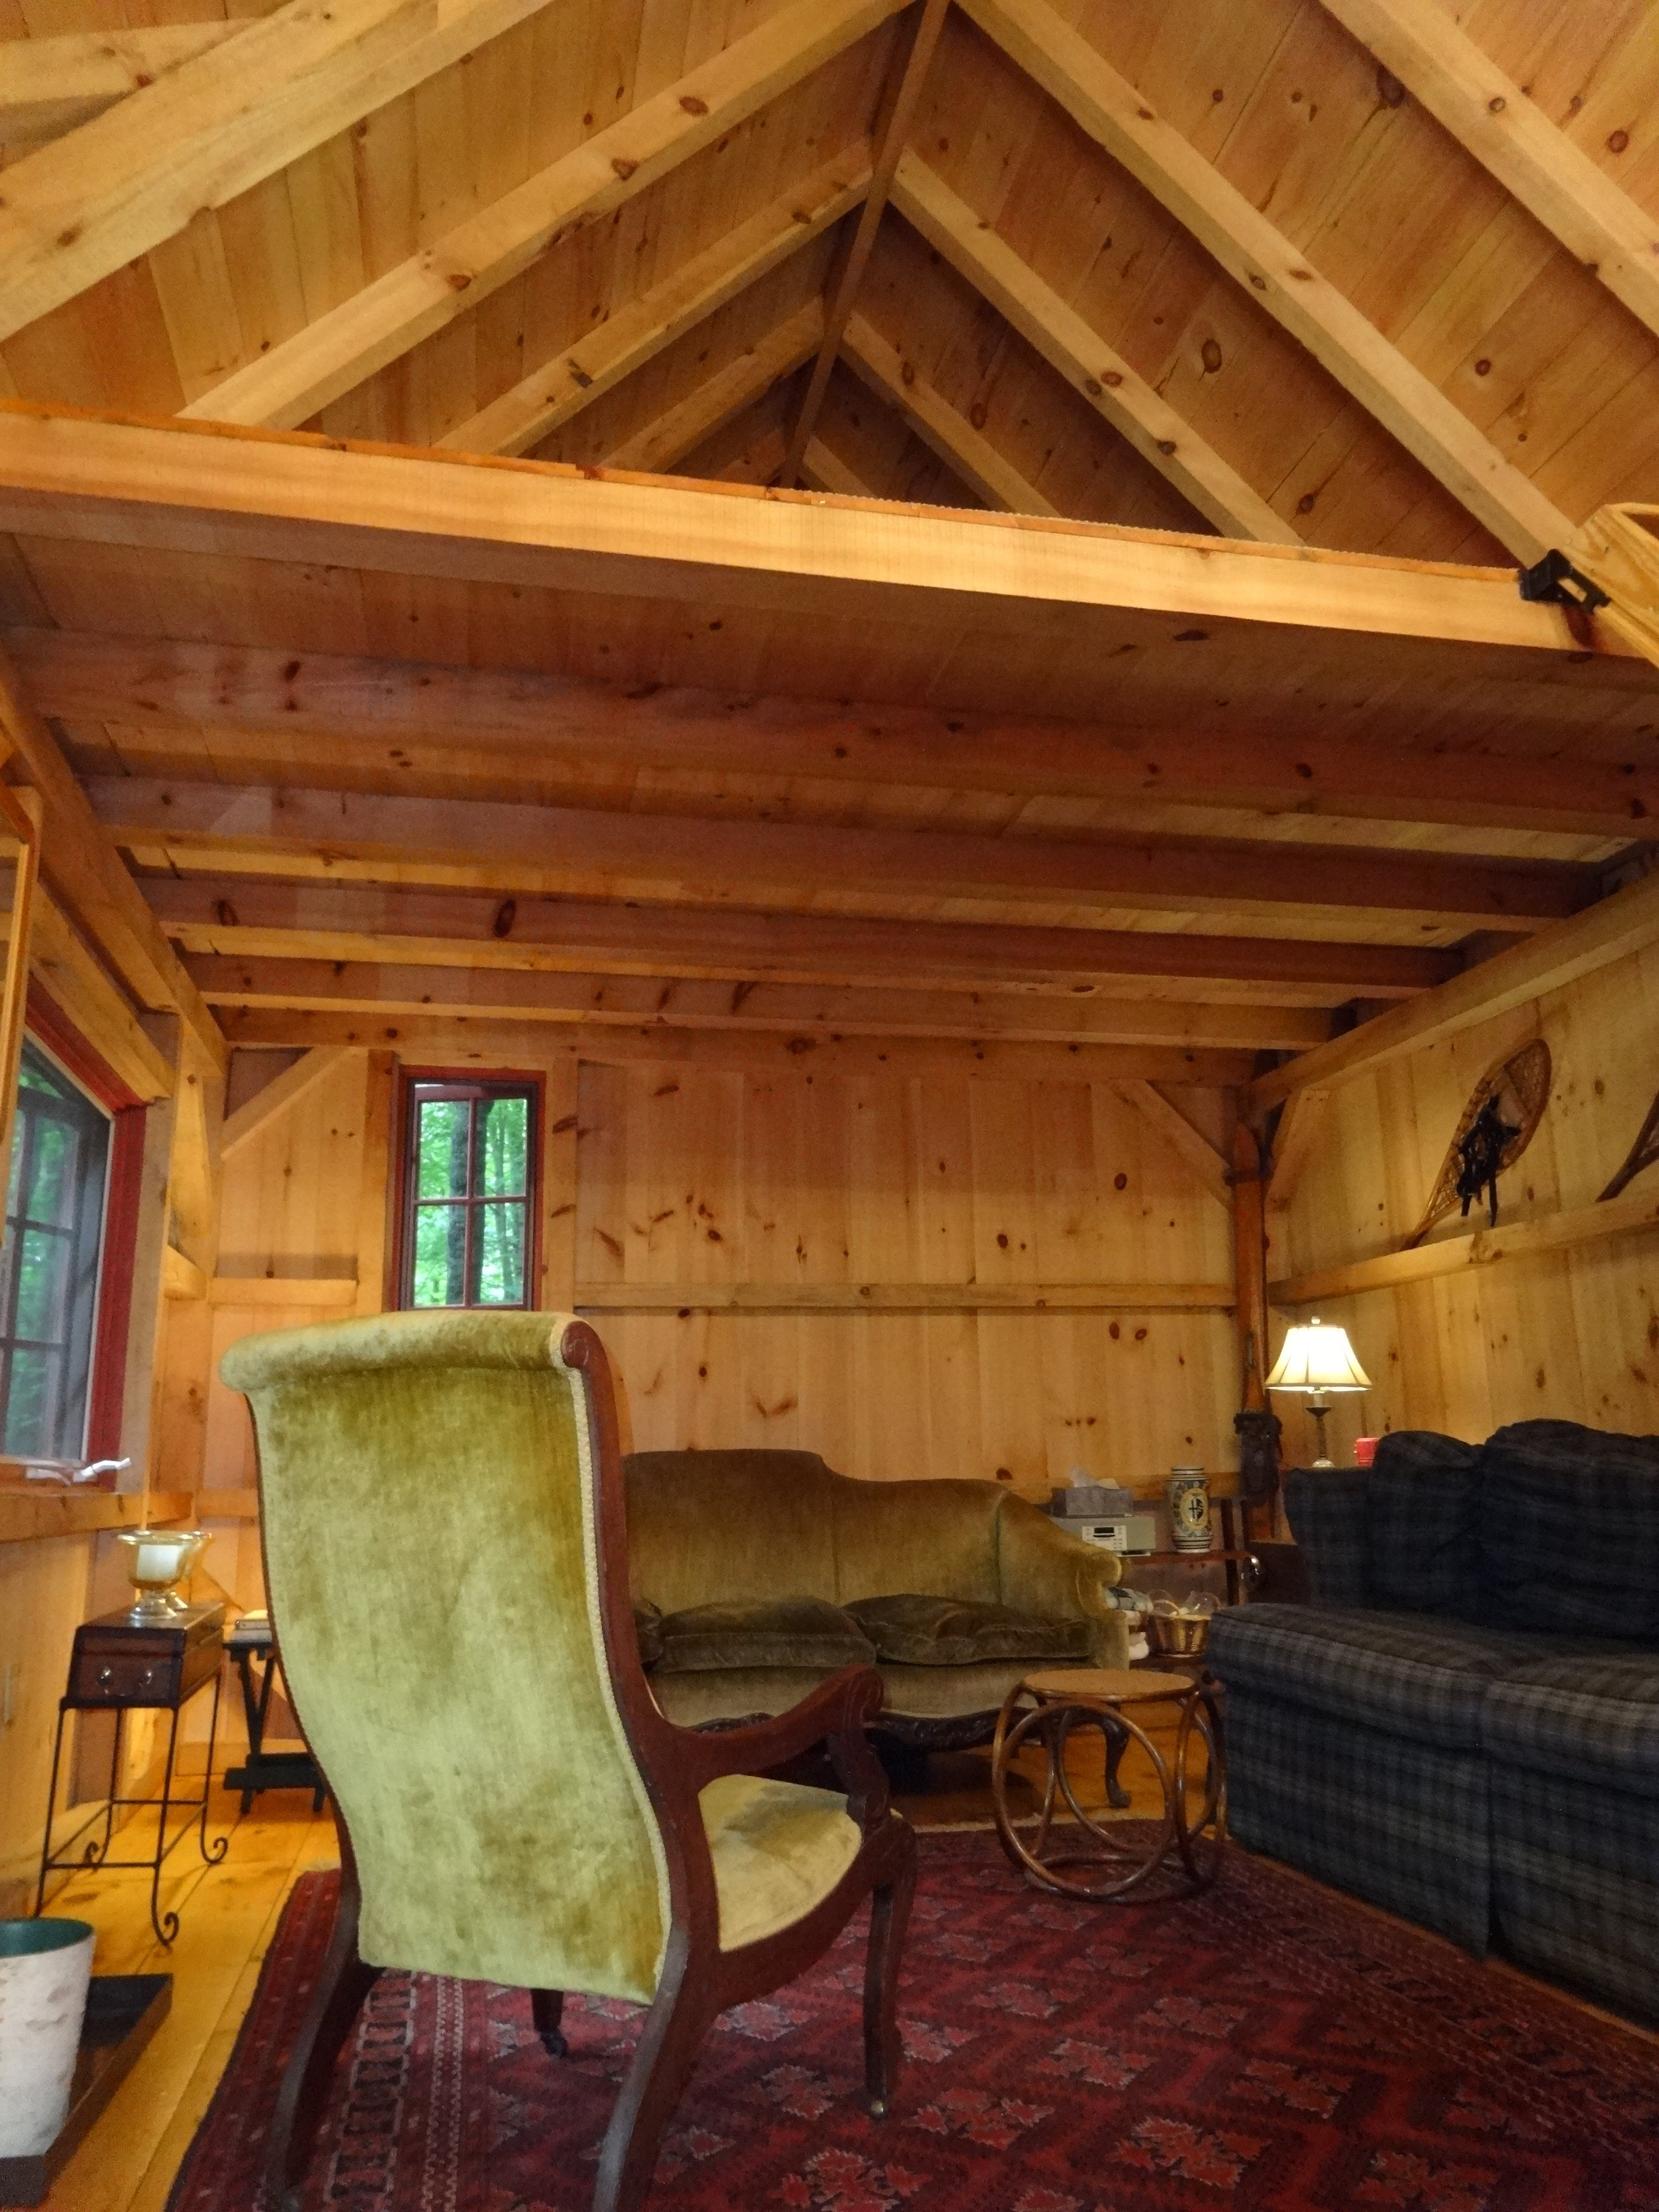 Vaulted Ceiling With Loft In The Cabin Davies Davies